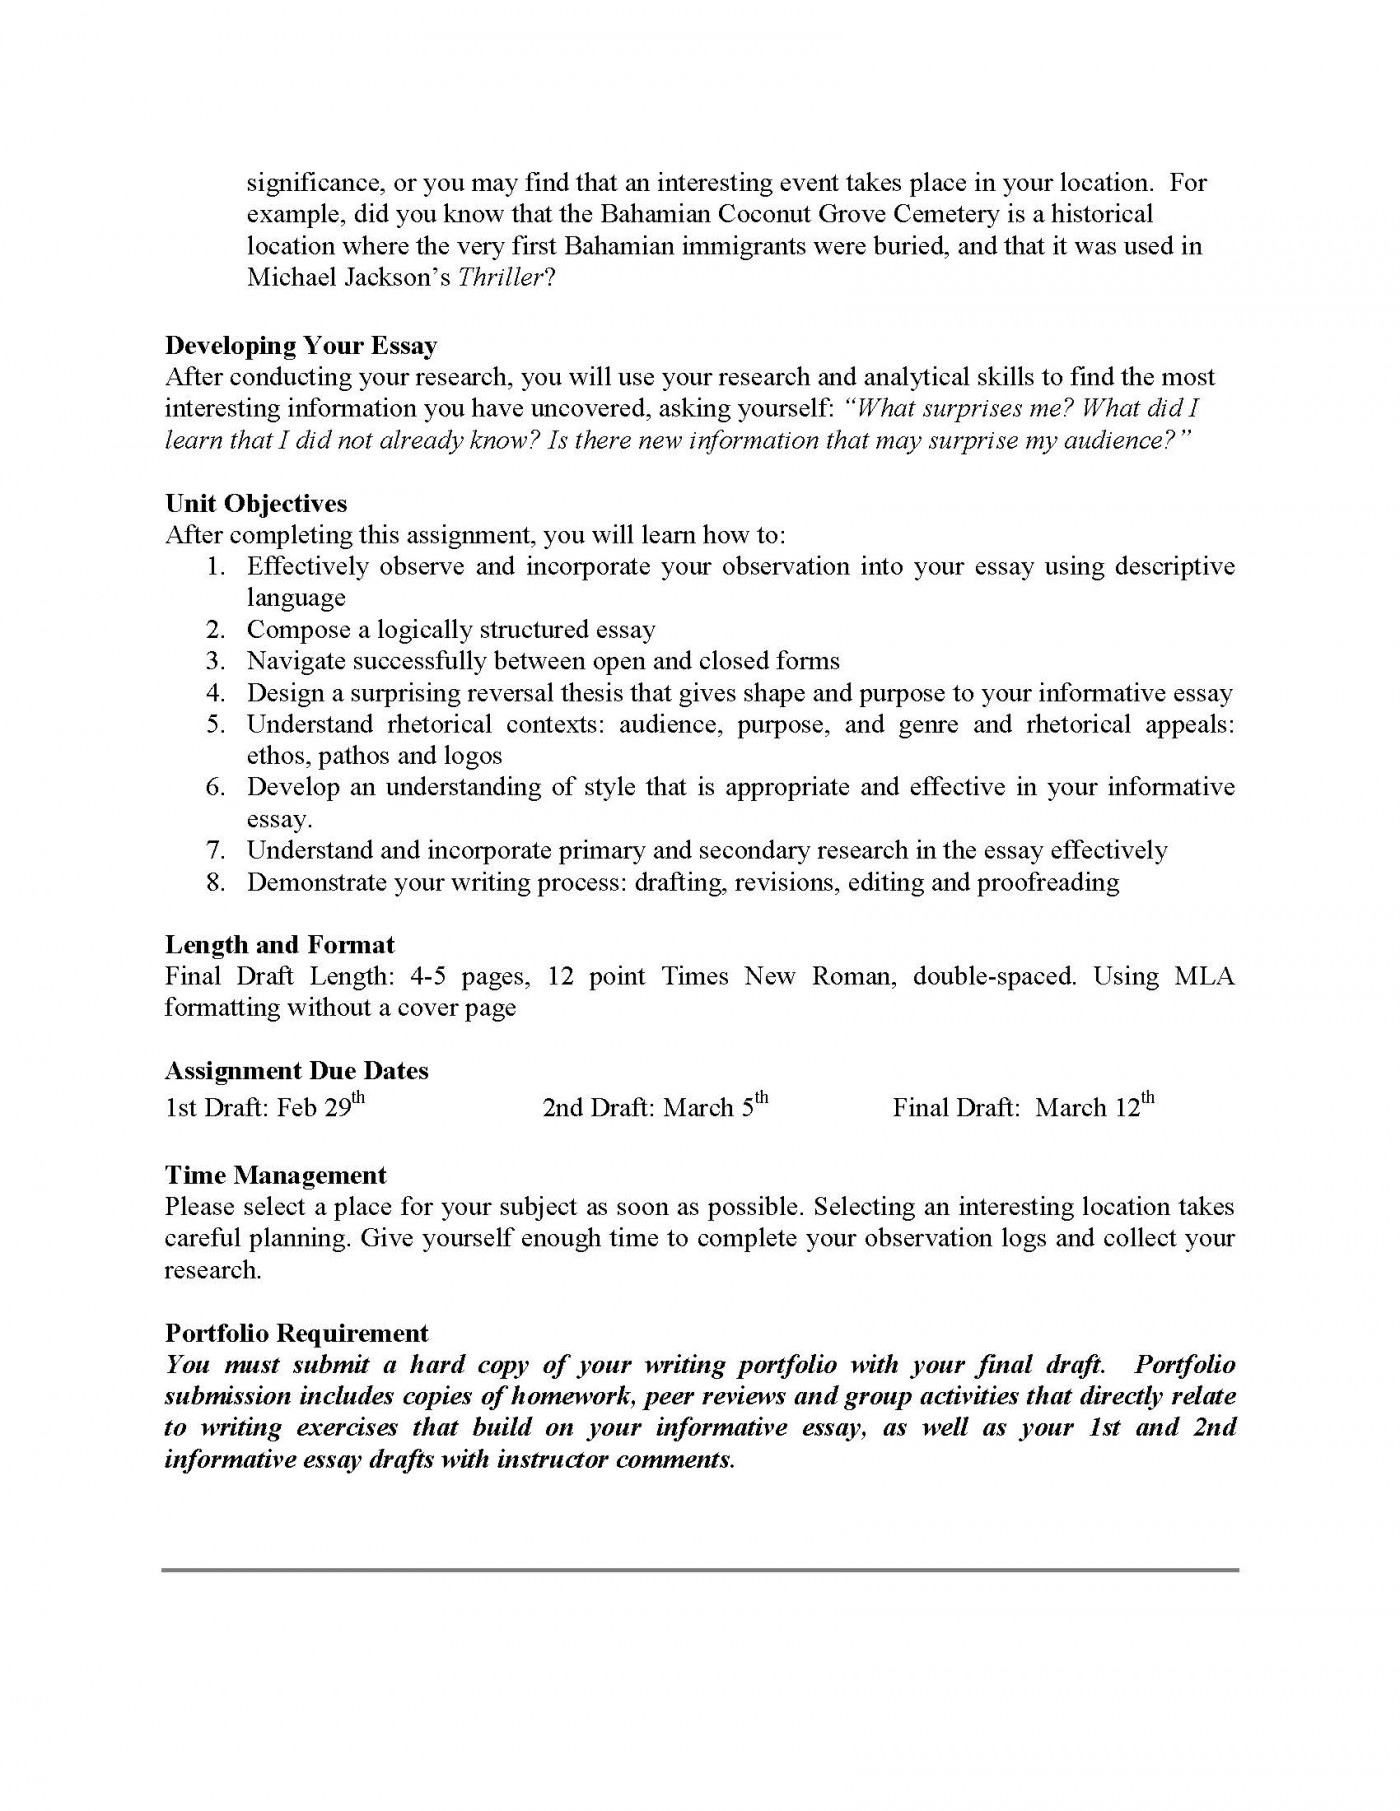 014 Informative Essay Unit Assignment Page 2 Dreaded Graphic Organizer Middle School Rubric 6th Grade Topics 1400